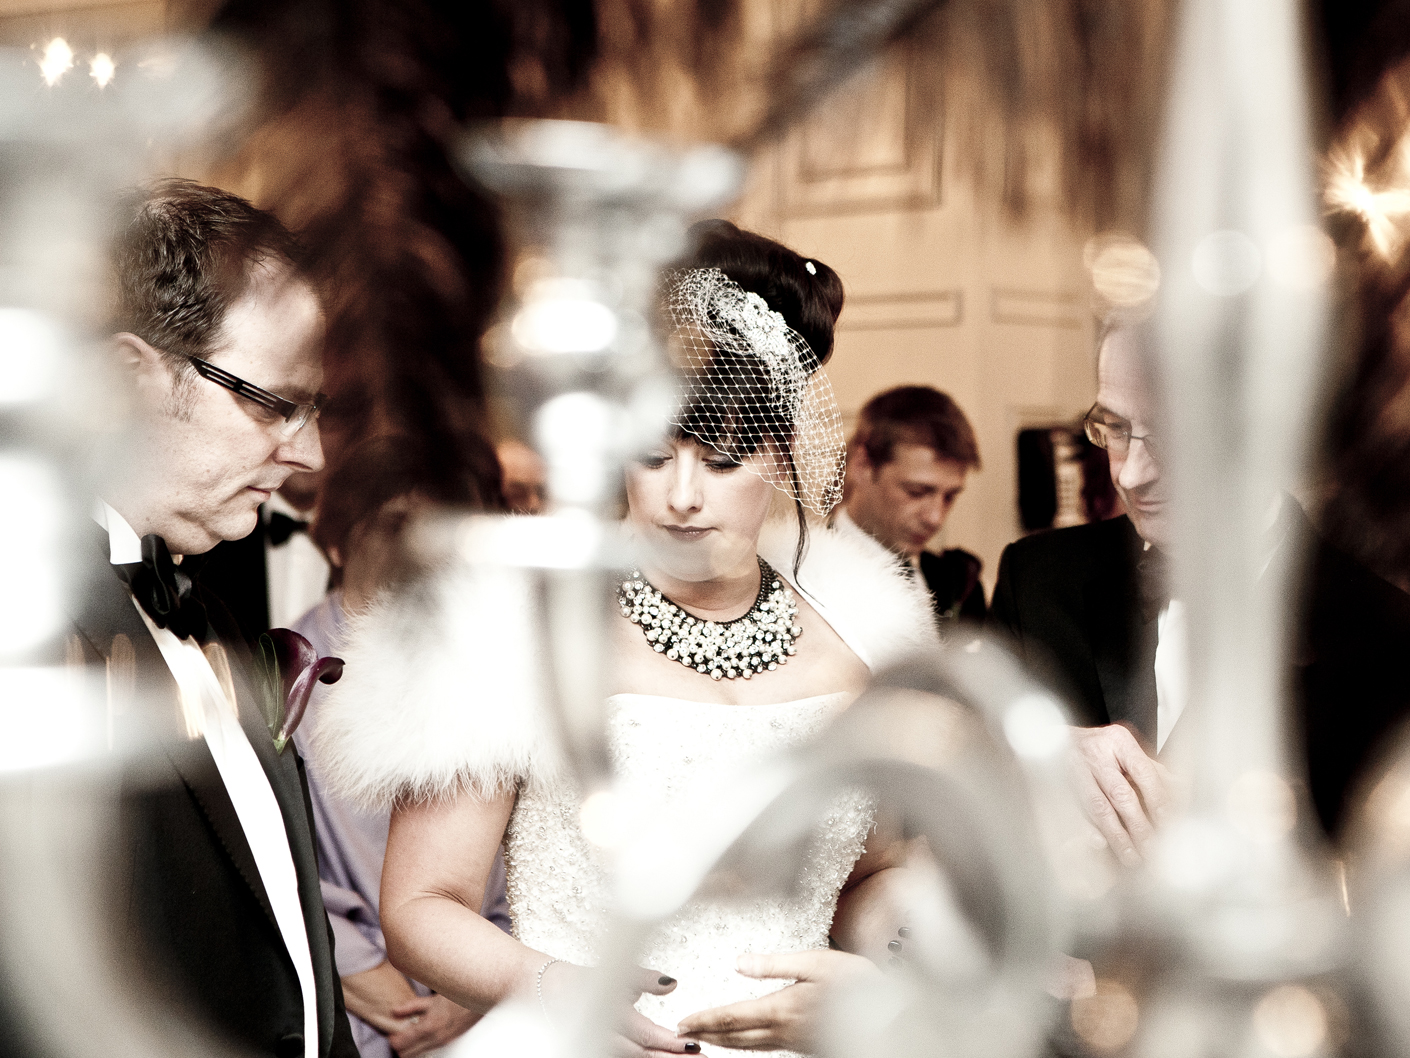 photography-of-the-civil-wedding-ceremony-in-cheshire